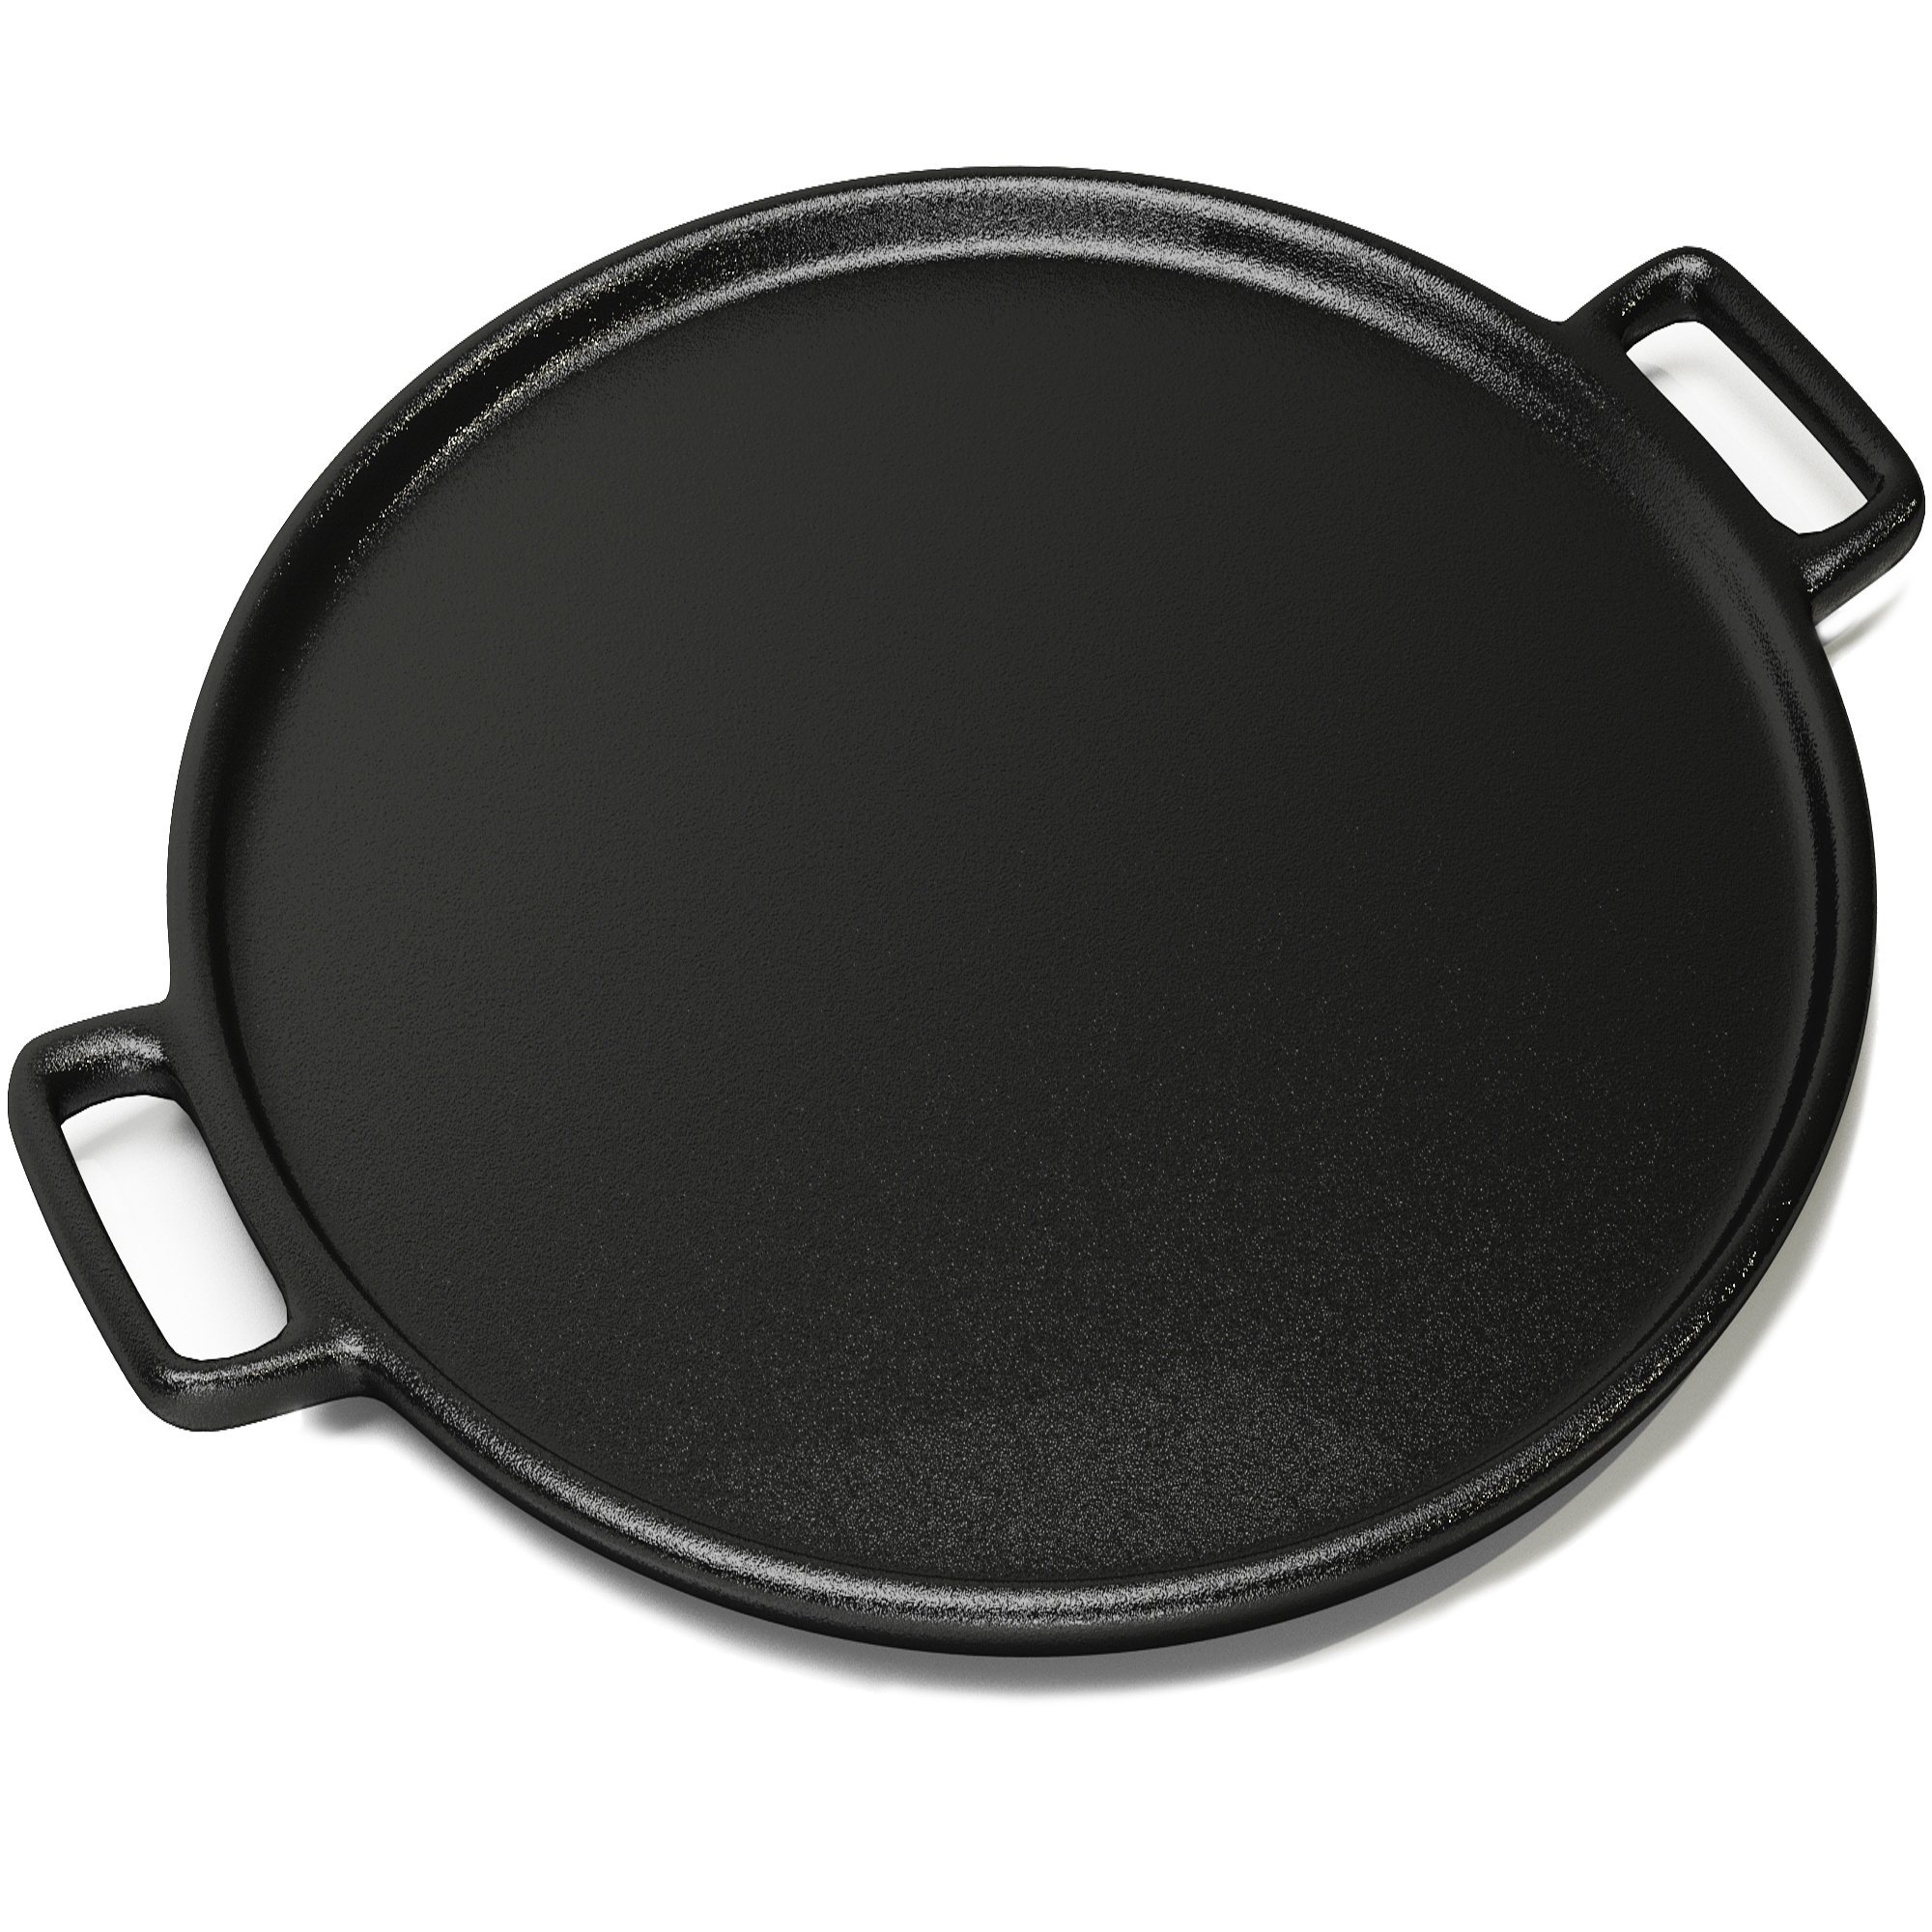 "Home-Complete HC-5001 Cast Iron Pizza Pan-14"" Skillet for Cooking, Baking, Grilling-Durable, Long Lasting, Even-Heating and Versatile Kitchen Cookware, Default, Black"